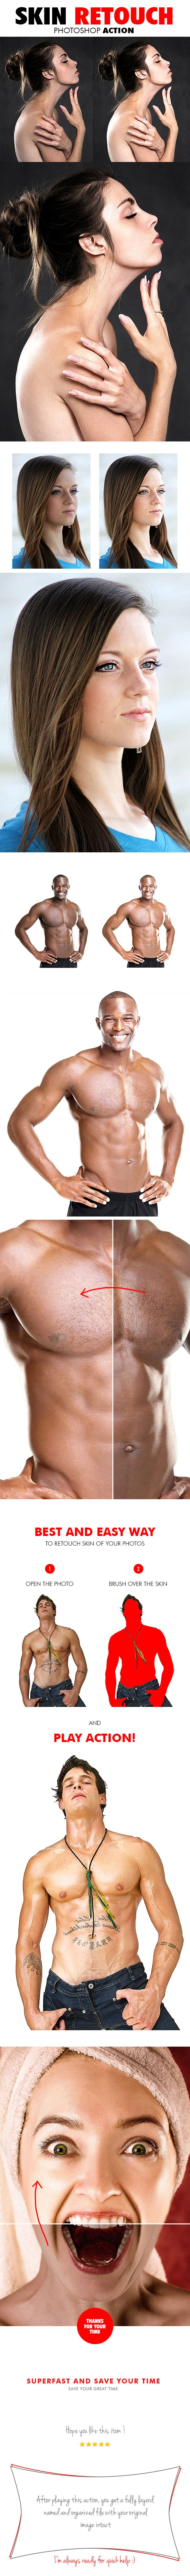 Skin Retouch Photoshop Action - Photo Effects Actions